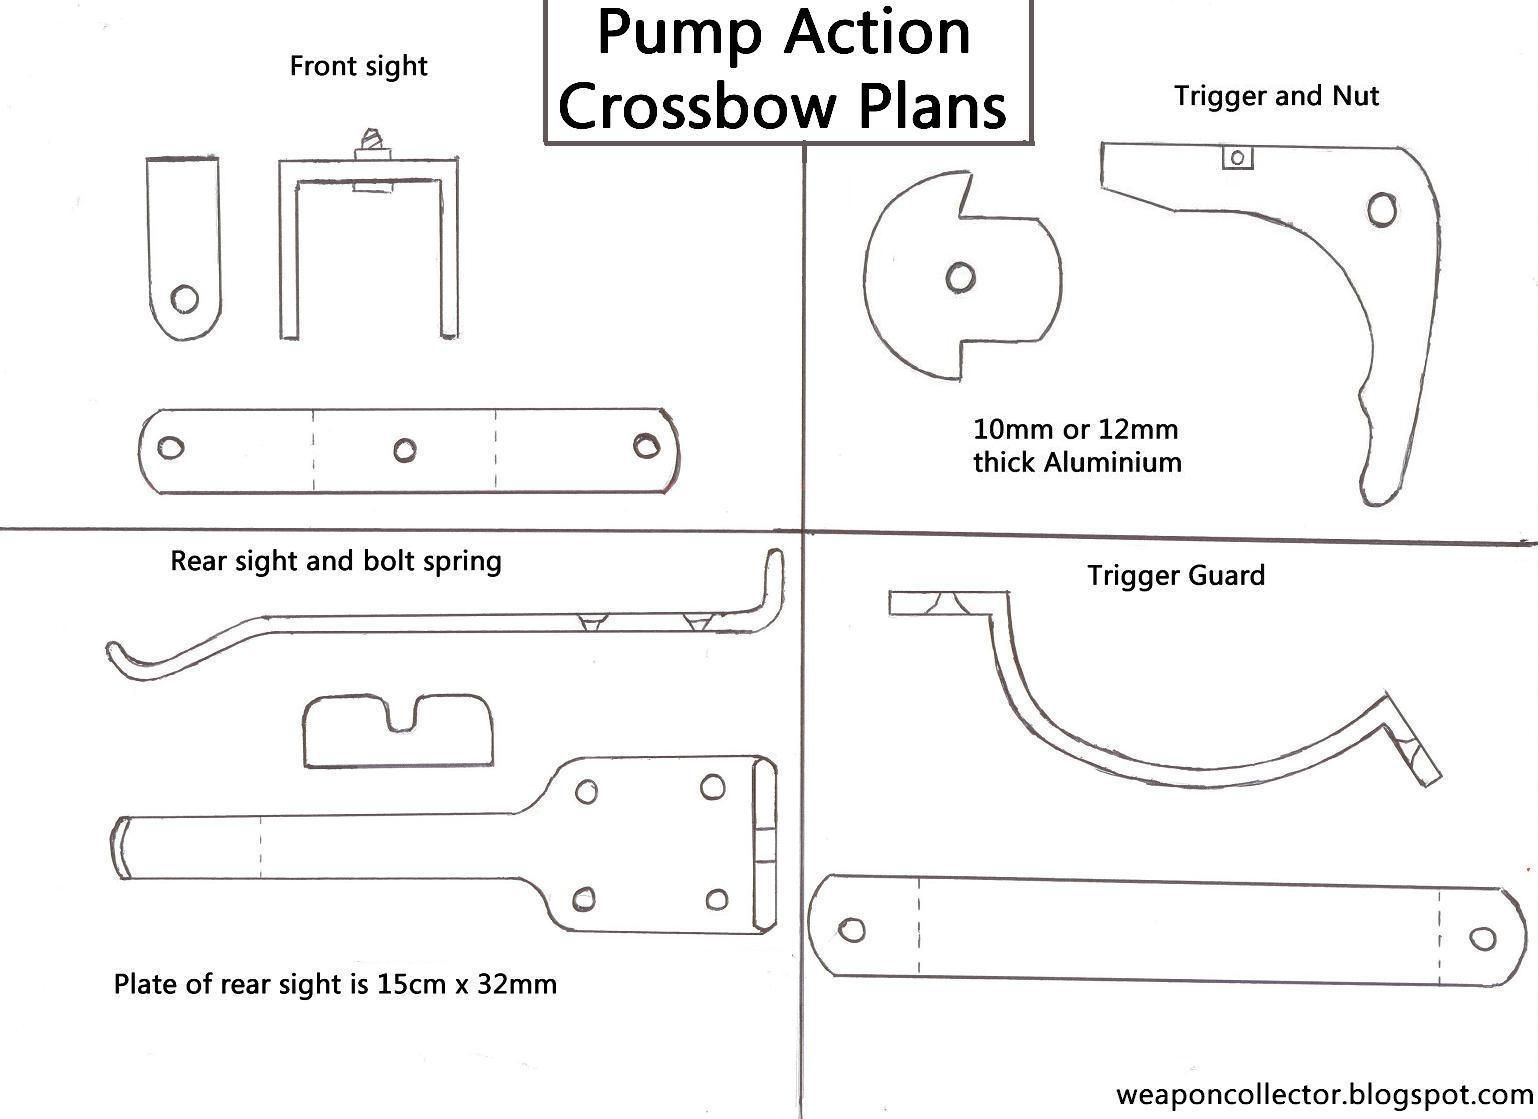 How To Make A Pump Action Crossbow Plans